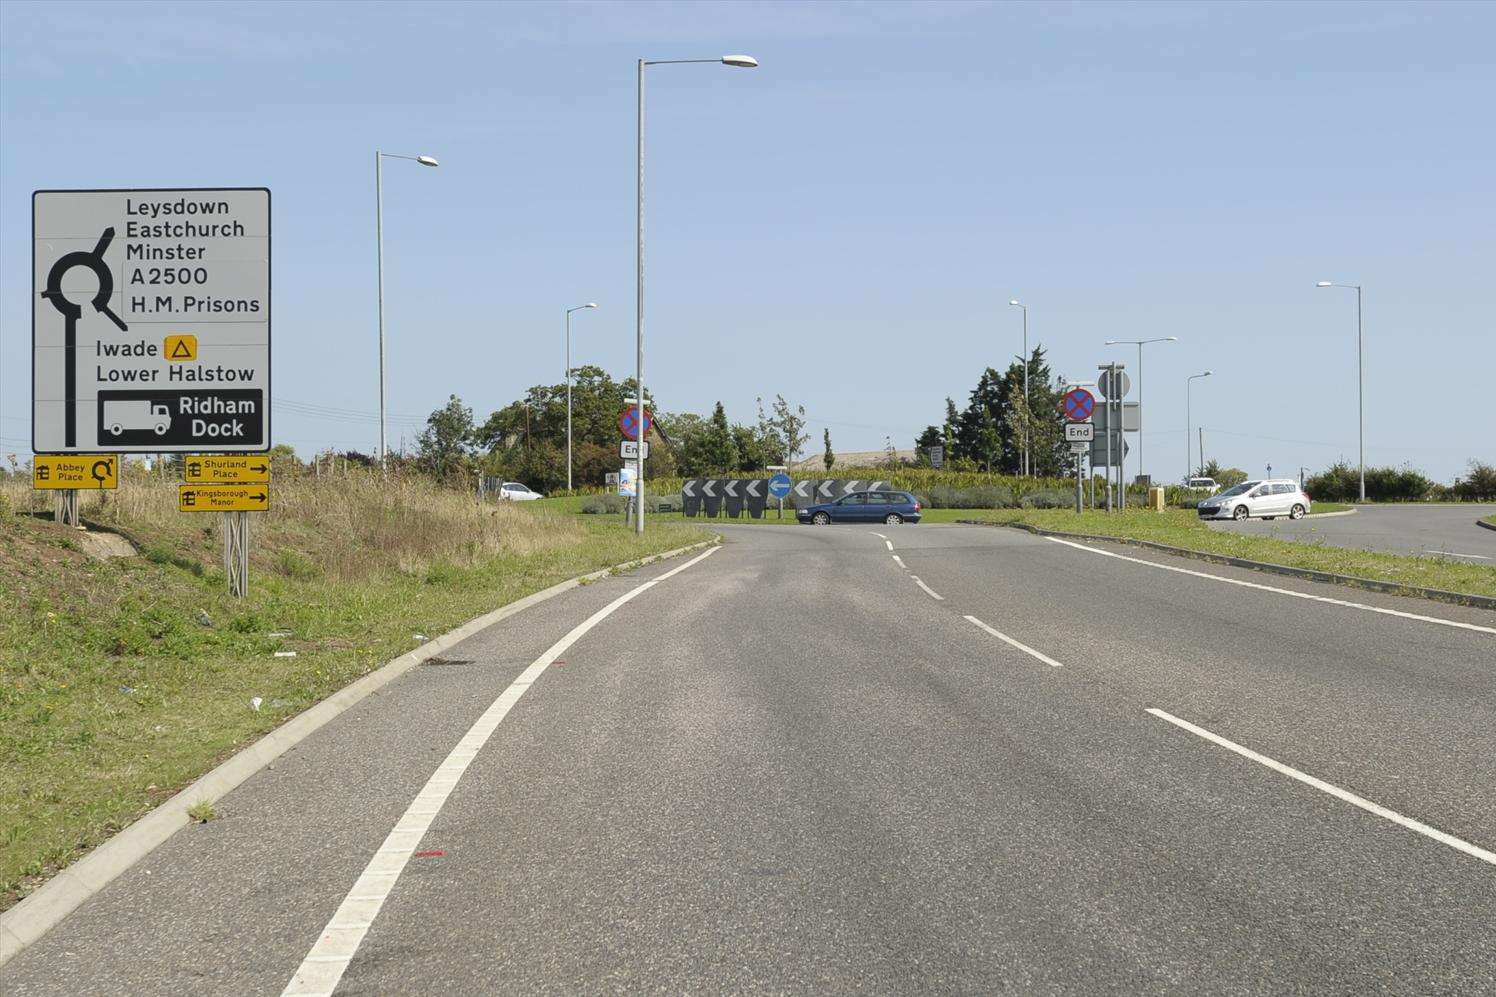 Views of roundabout and signage at Cowstead Corner